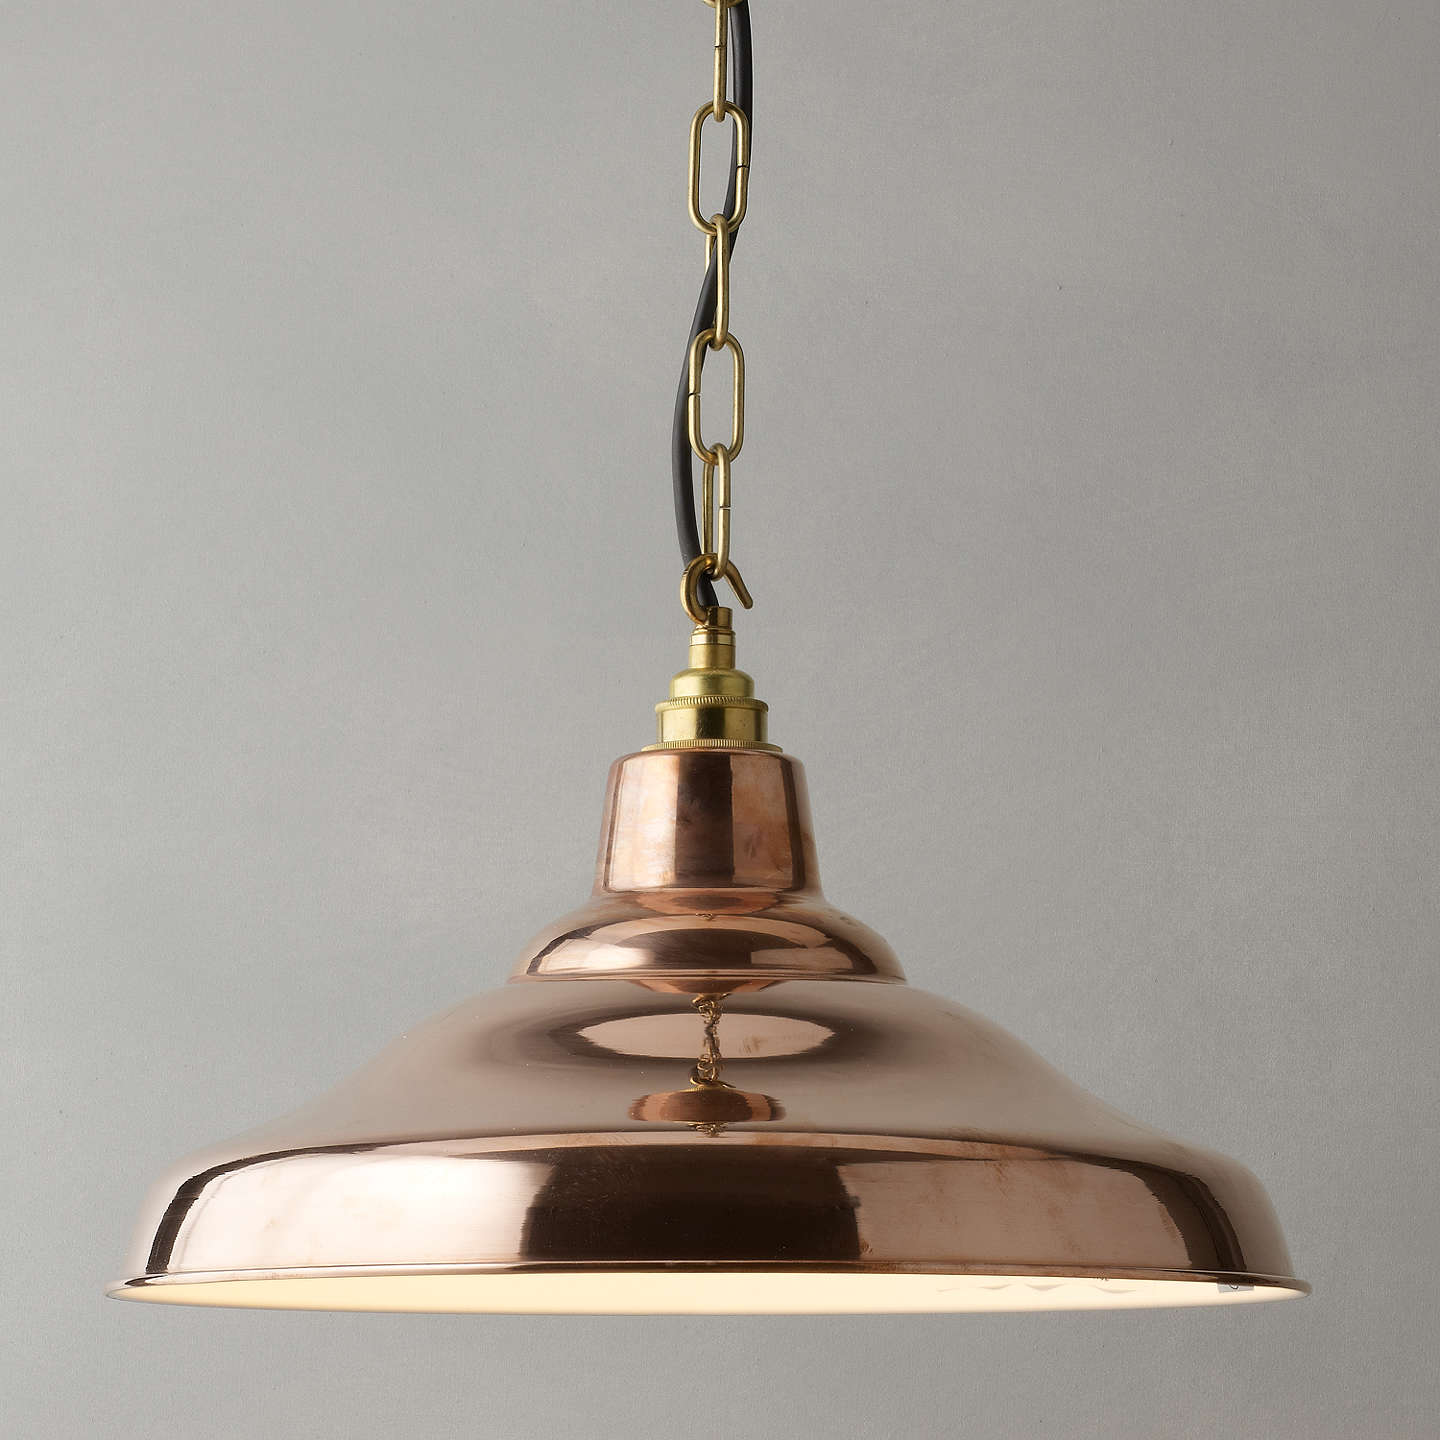 Davey Lighting Factory Ceiling Light, Copper At John Lewis